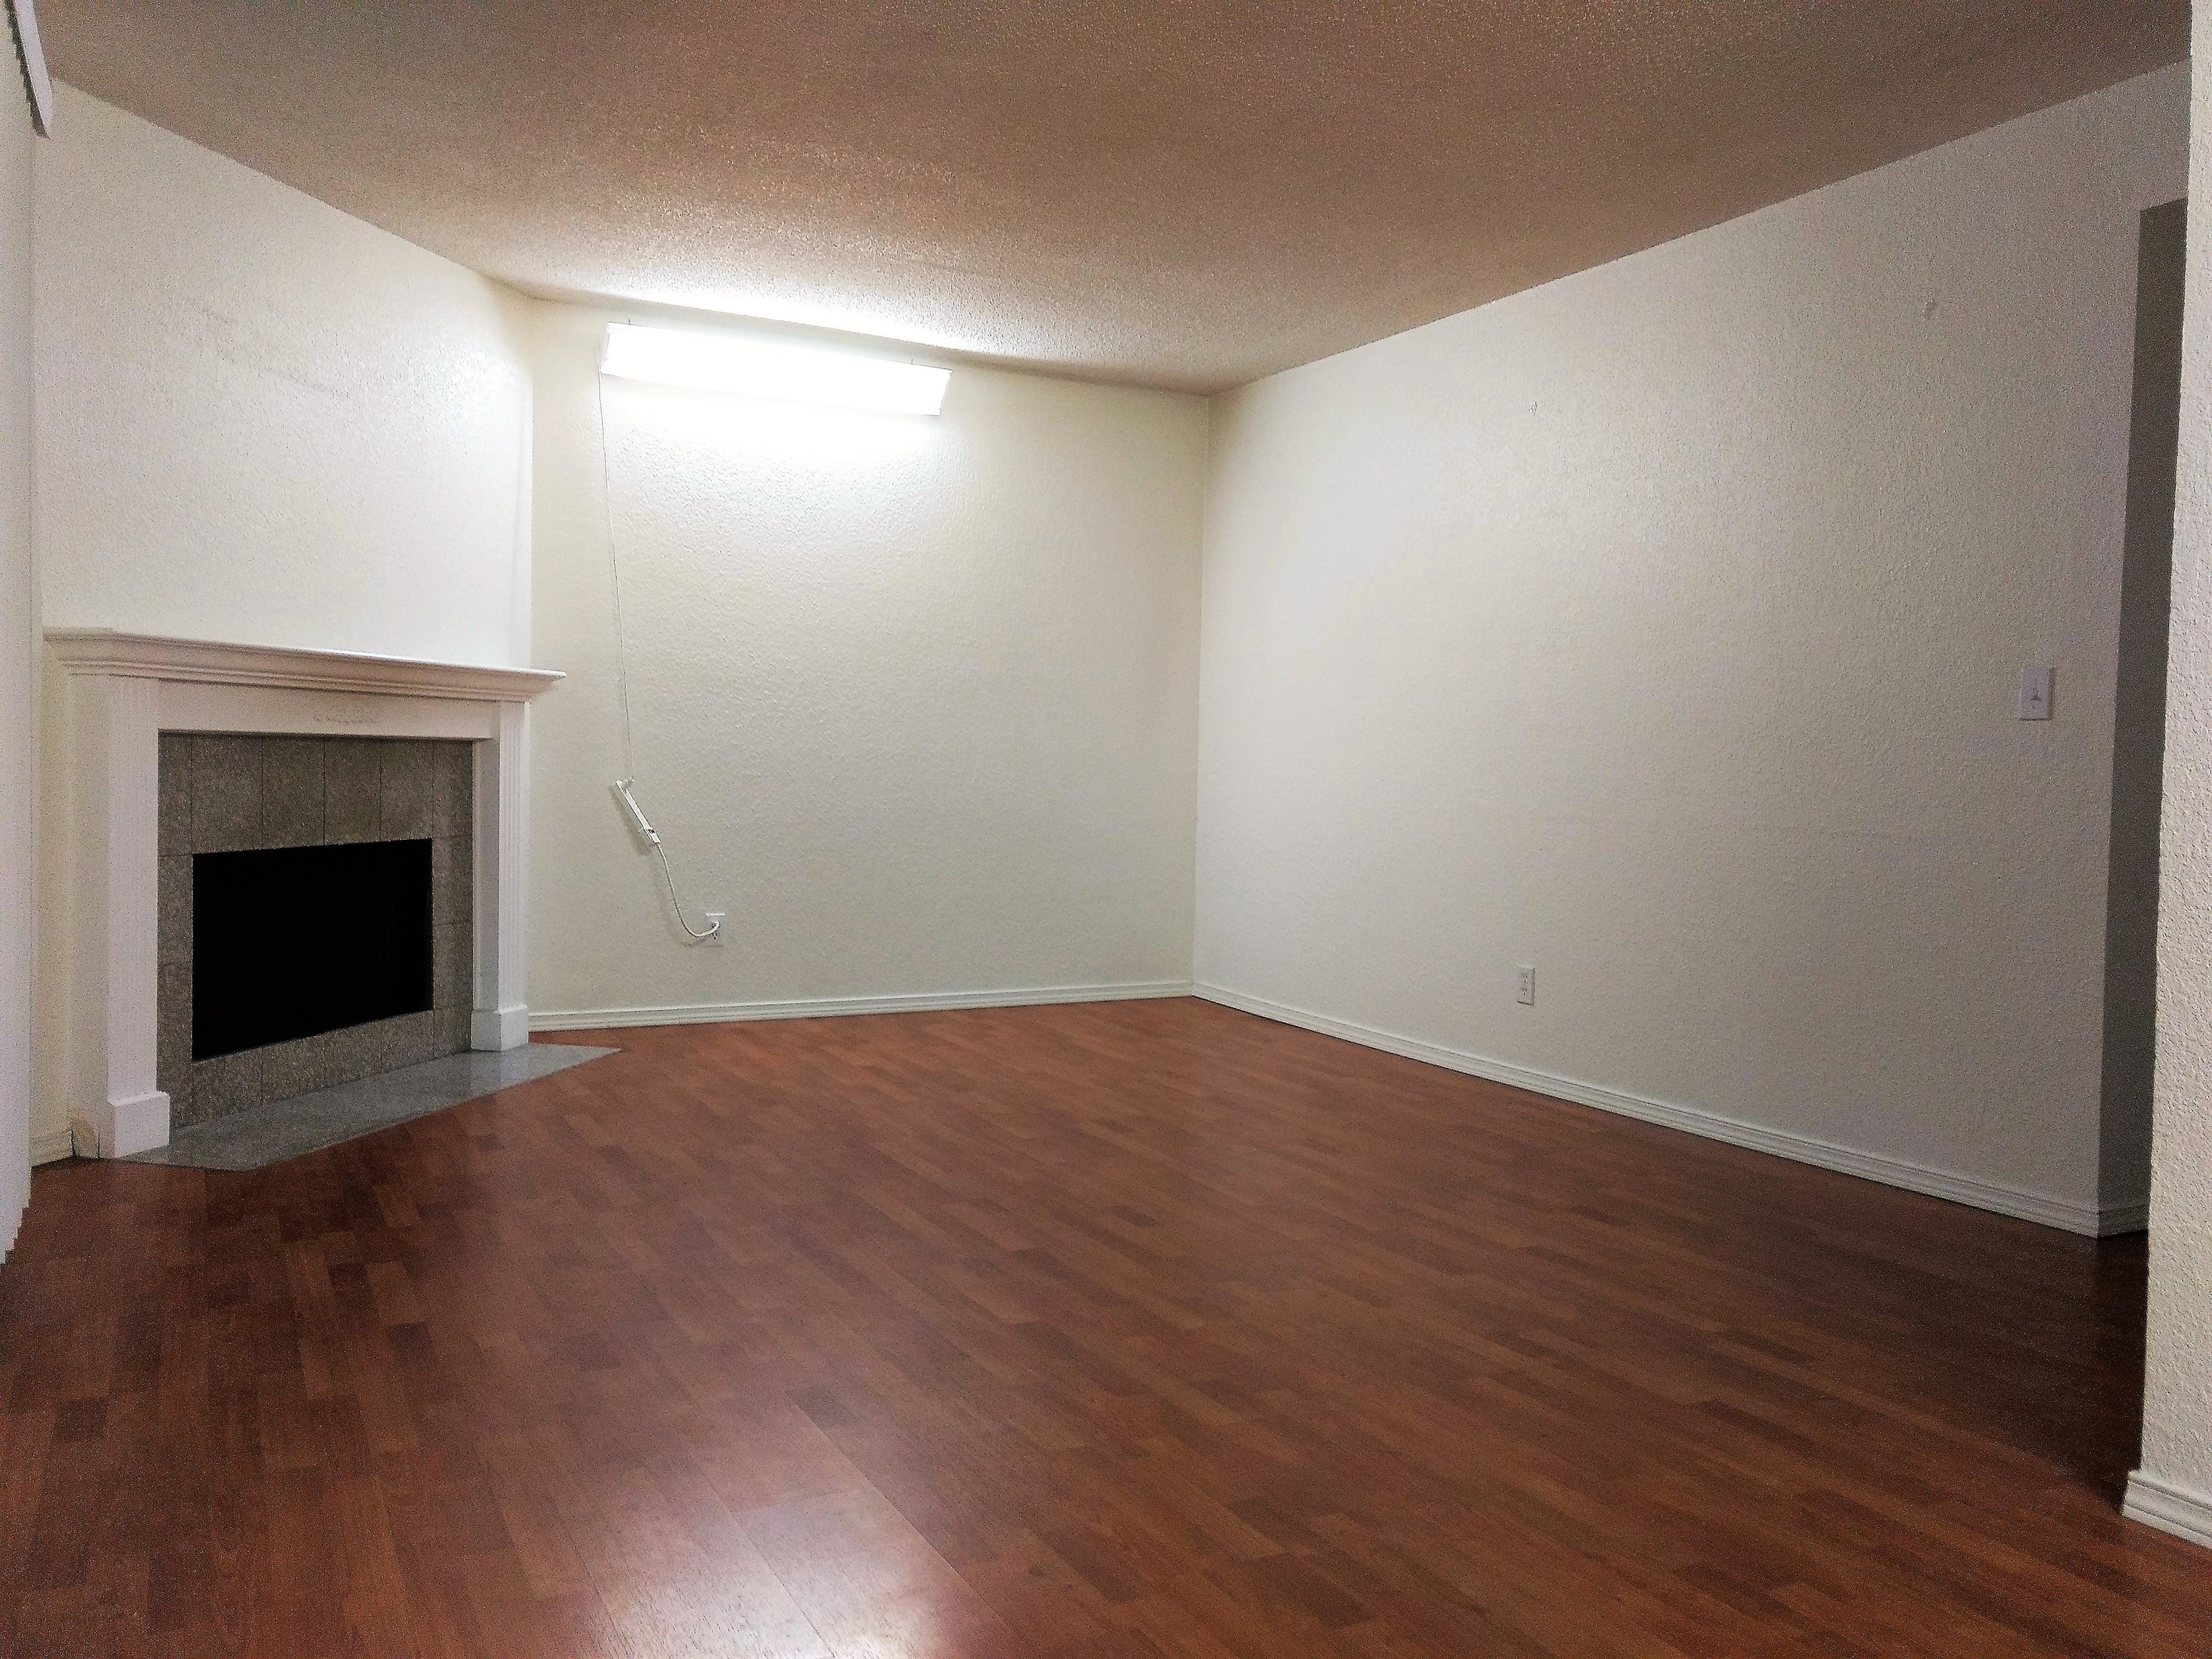 2 Bed 1 Bath Condo At Bellevue Crossroads For Long Term Lease